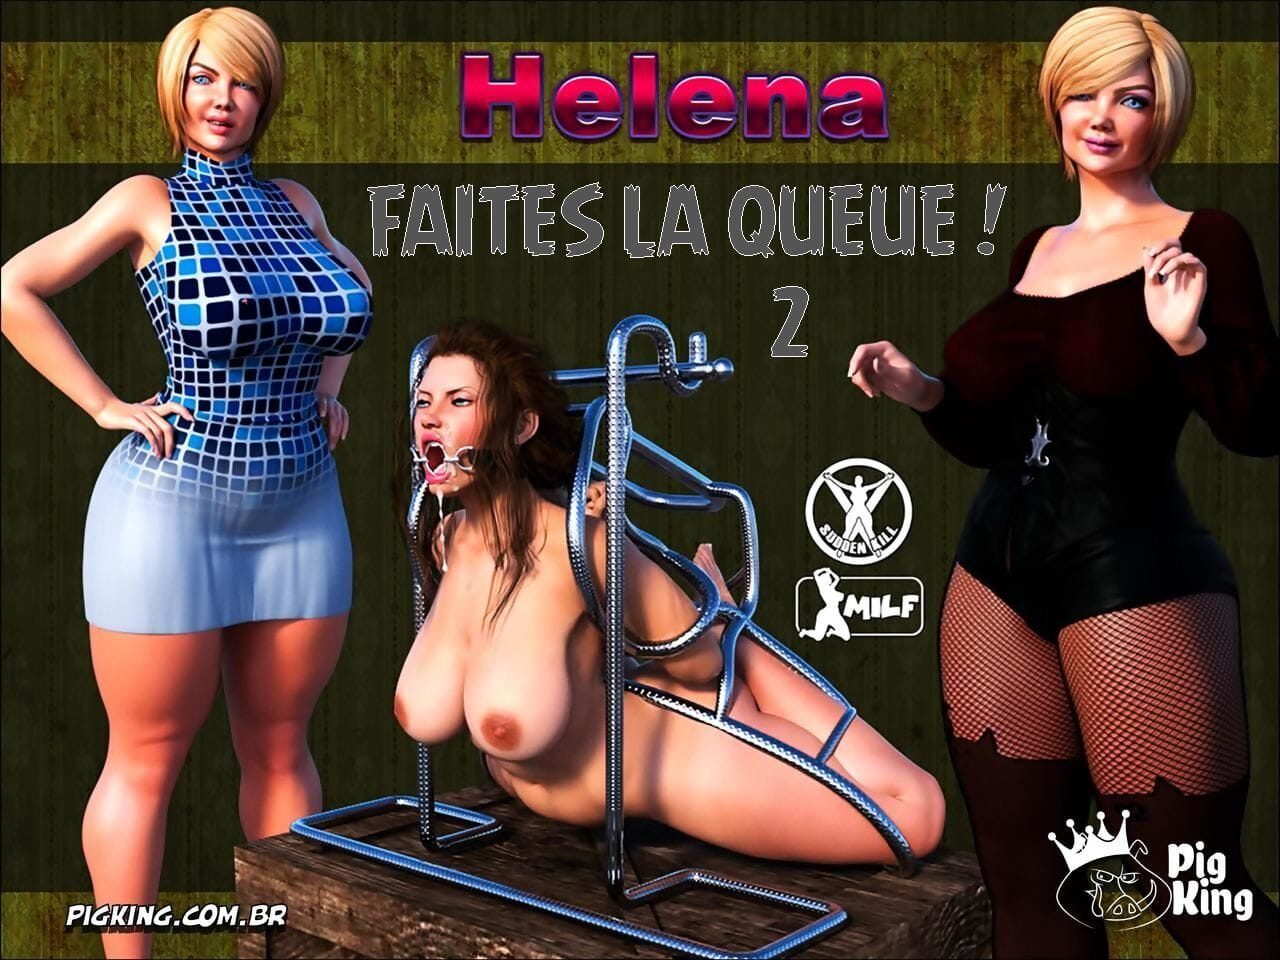 Illogical Padre Hélèna - Faites coldness Queue/ Win eradicate affect gang 2 FrenchLegolas67